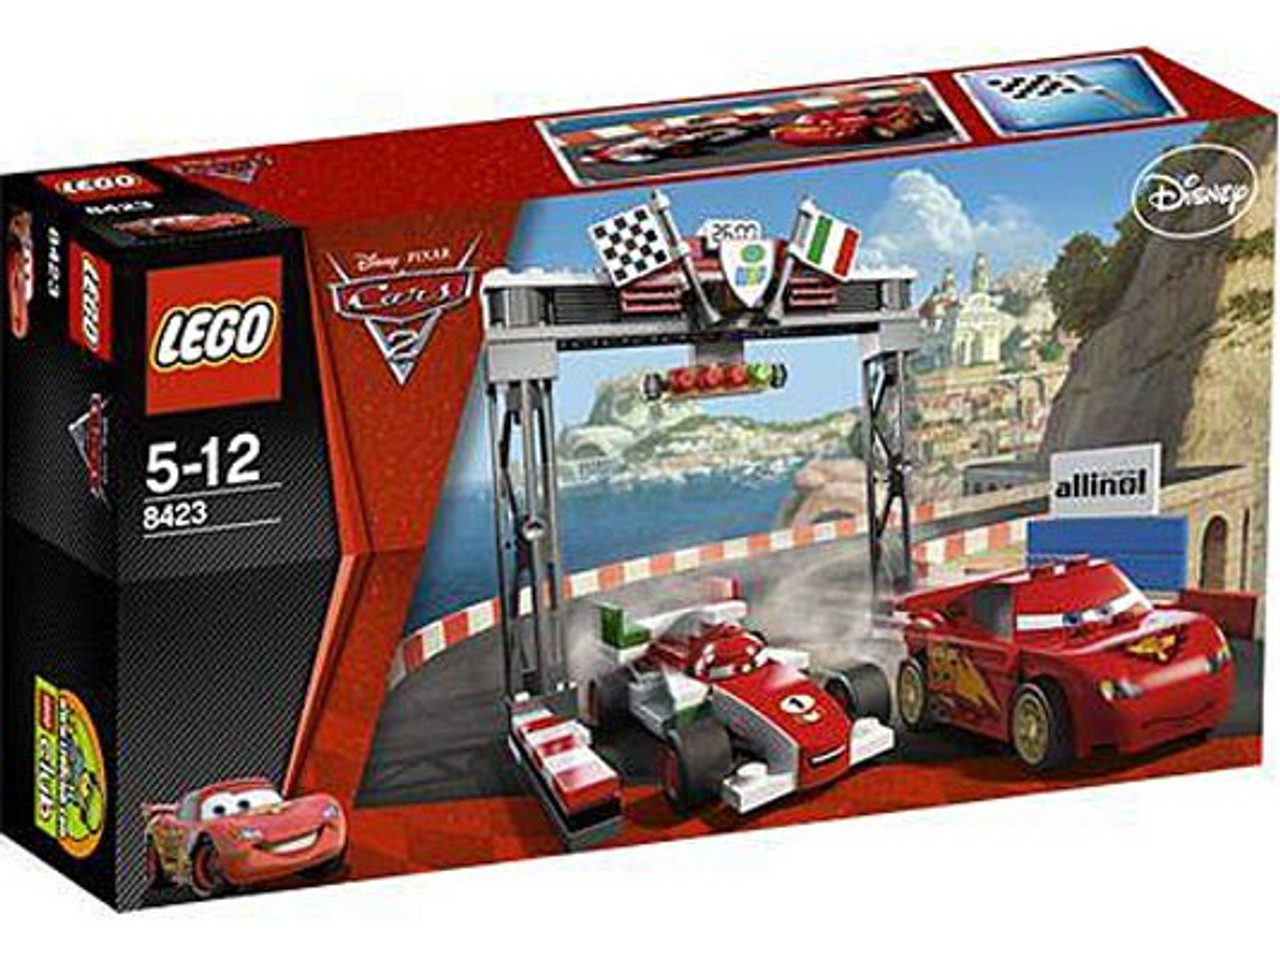 0c467ba7d8b2 LEGO Disney / Pixar Cars Cars 2 World Grand Prix Racing Rivalry Exclusive  Set #8423 [Damaged Package]